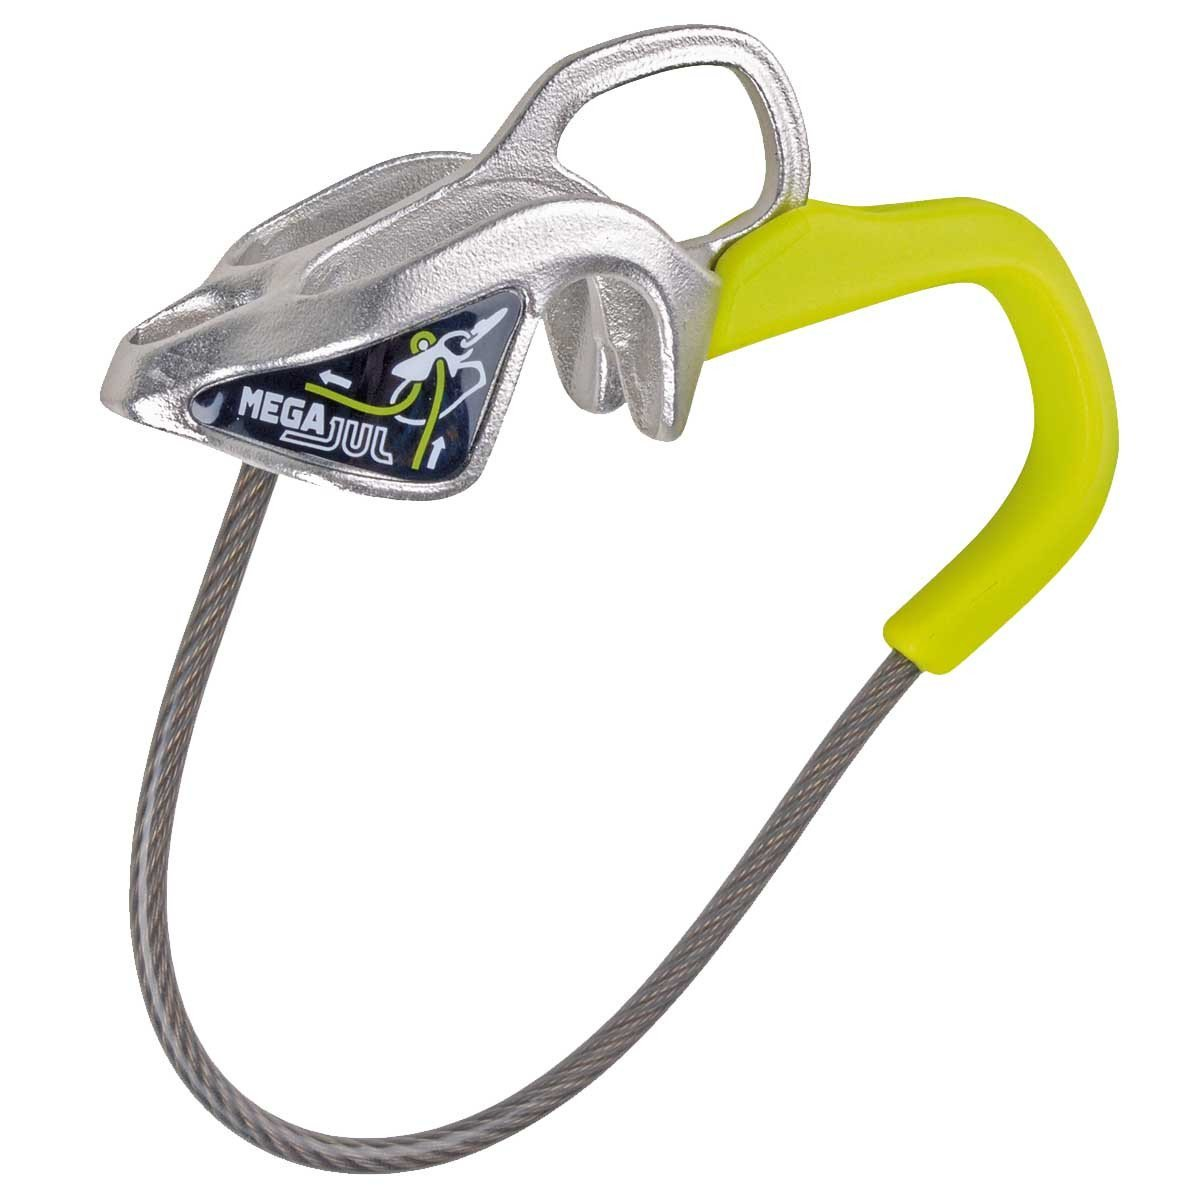 Edelrid Mega Jul belay device, in green and silver colours